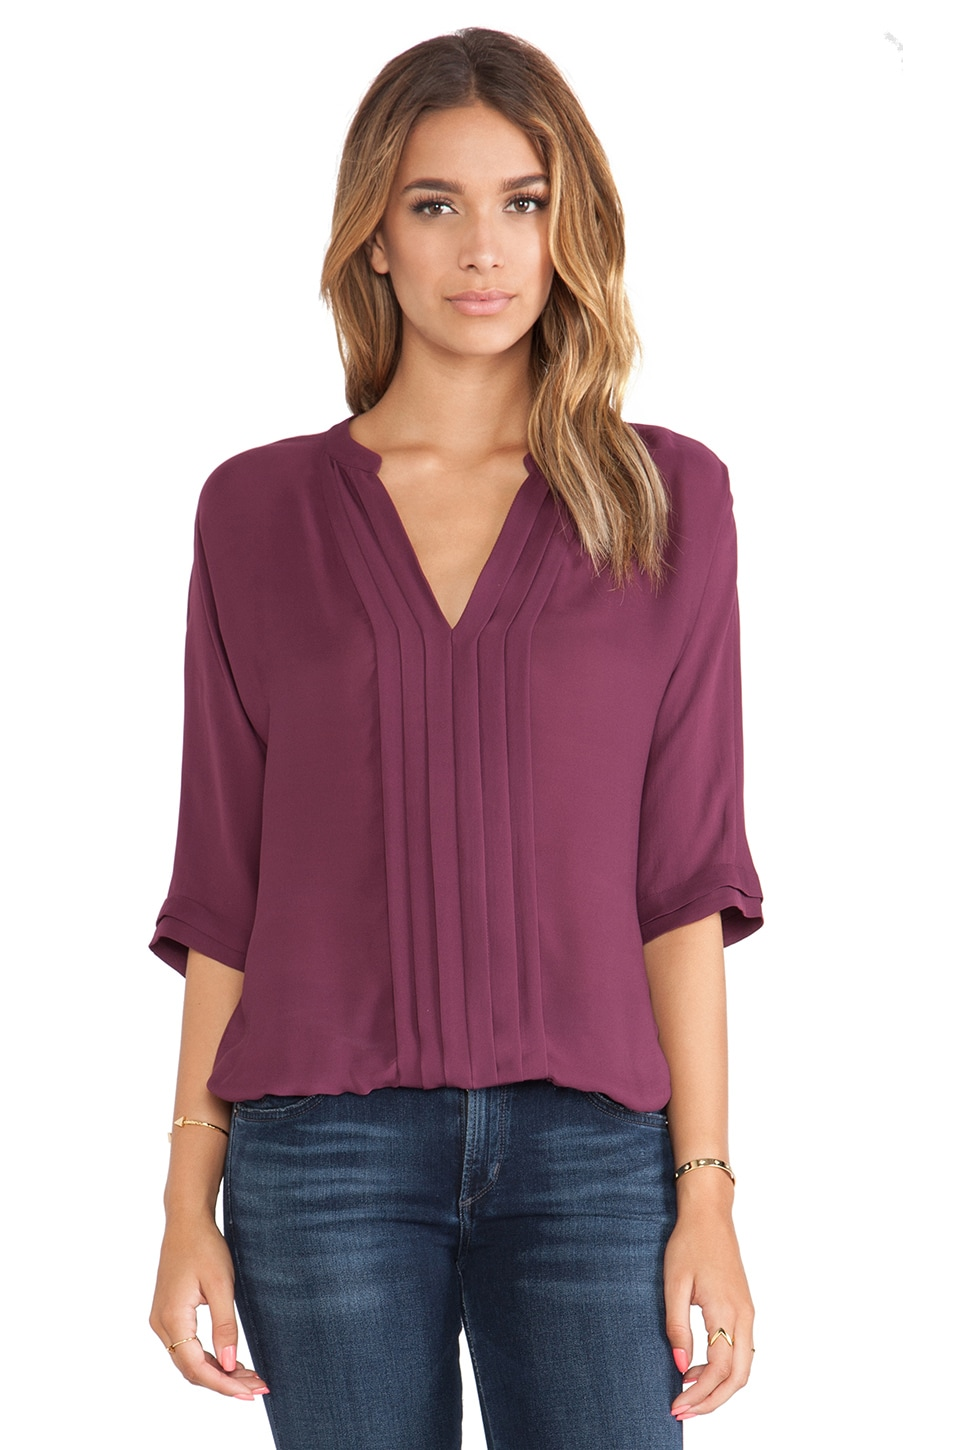 Joie Marru Blouse in Shiraz